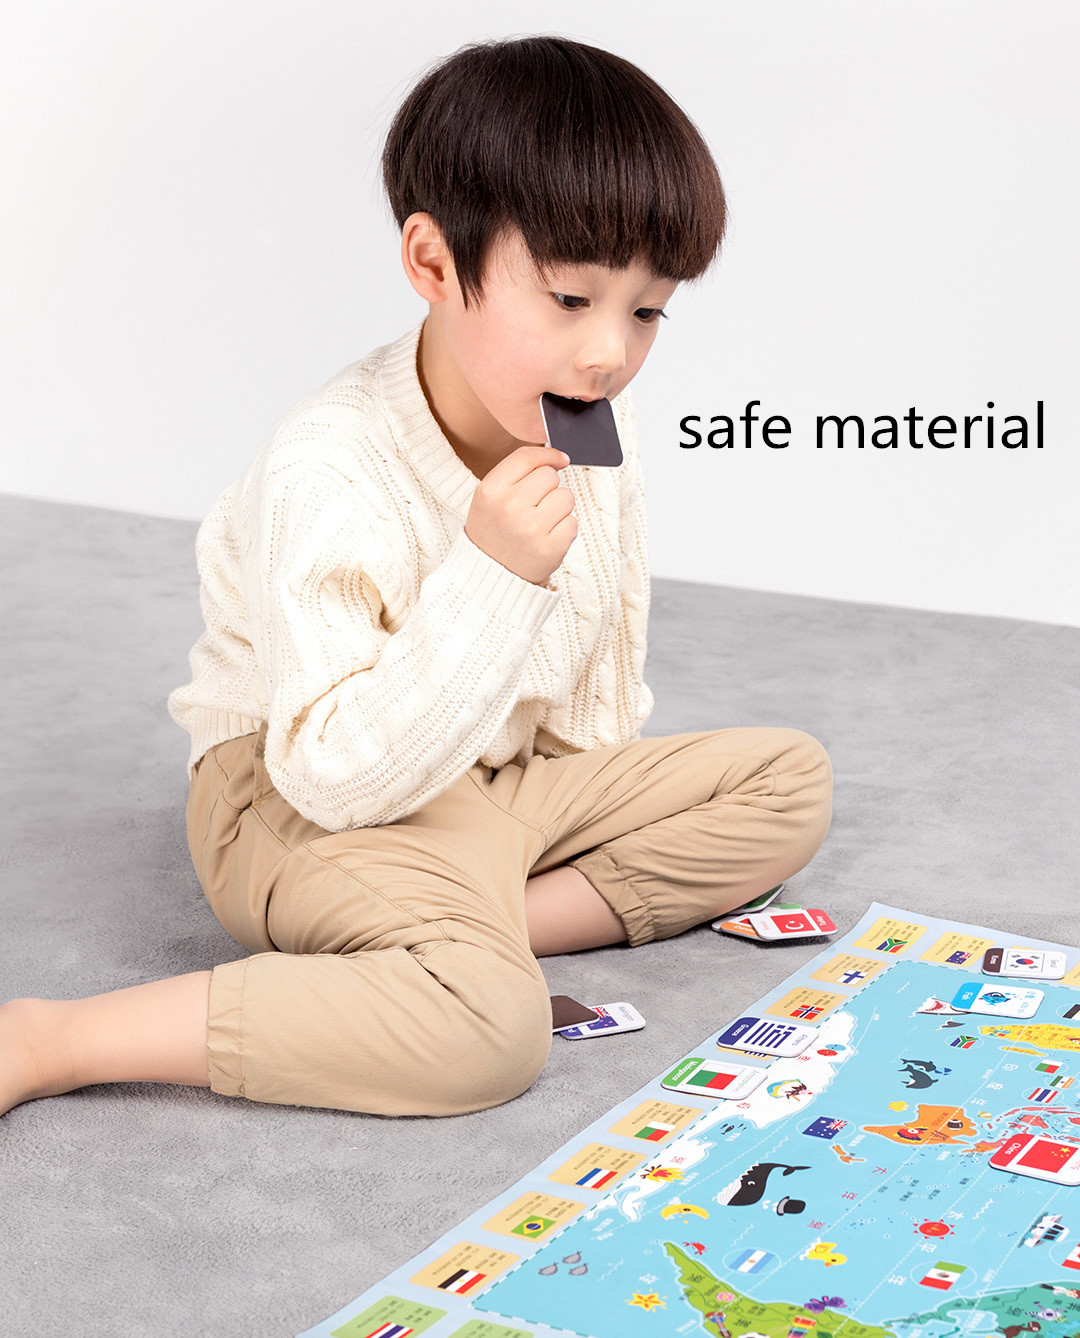 XIAOMI JIQIDAO Magnetic Board Game Toy Alphabet Color Figures National Flag Learning Developmental Toy Fridge